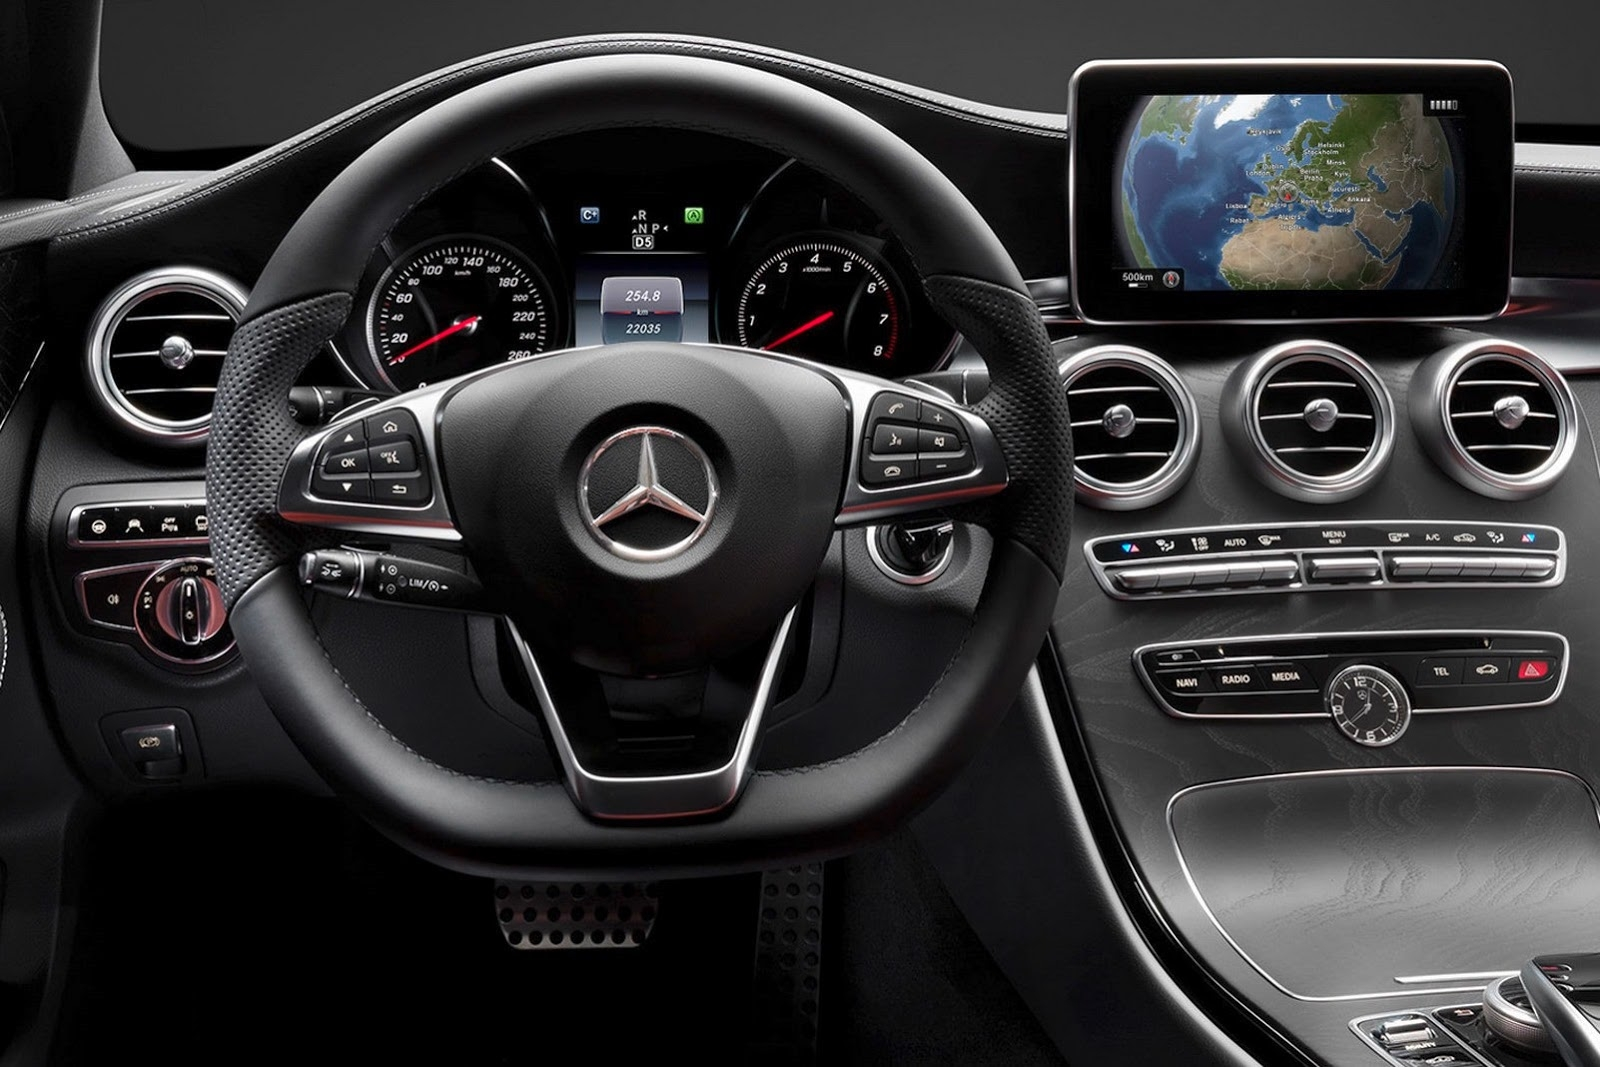 mercedes benz c class 2014 interior dashboard - Mercedes Suv Interior 2014